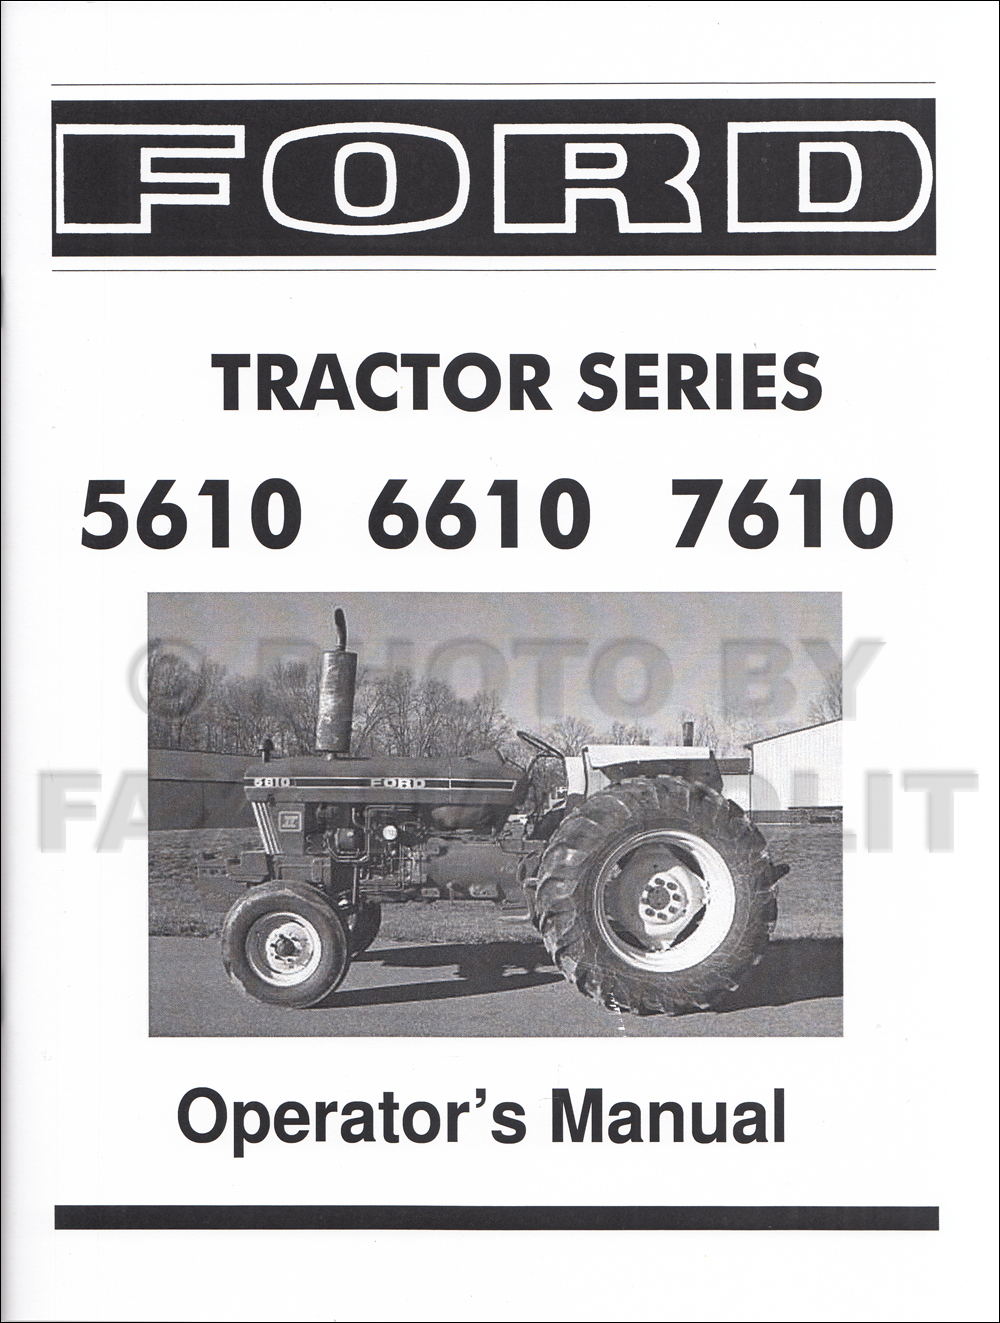 1982-1986 Ford Tractor Owners Manual Reprint 5610 6610 7610